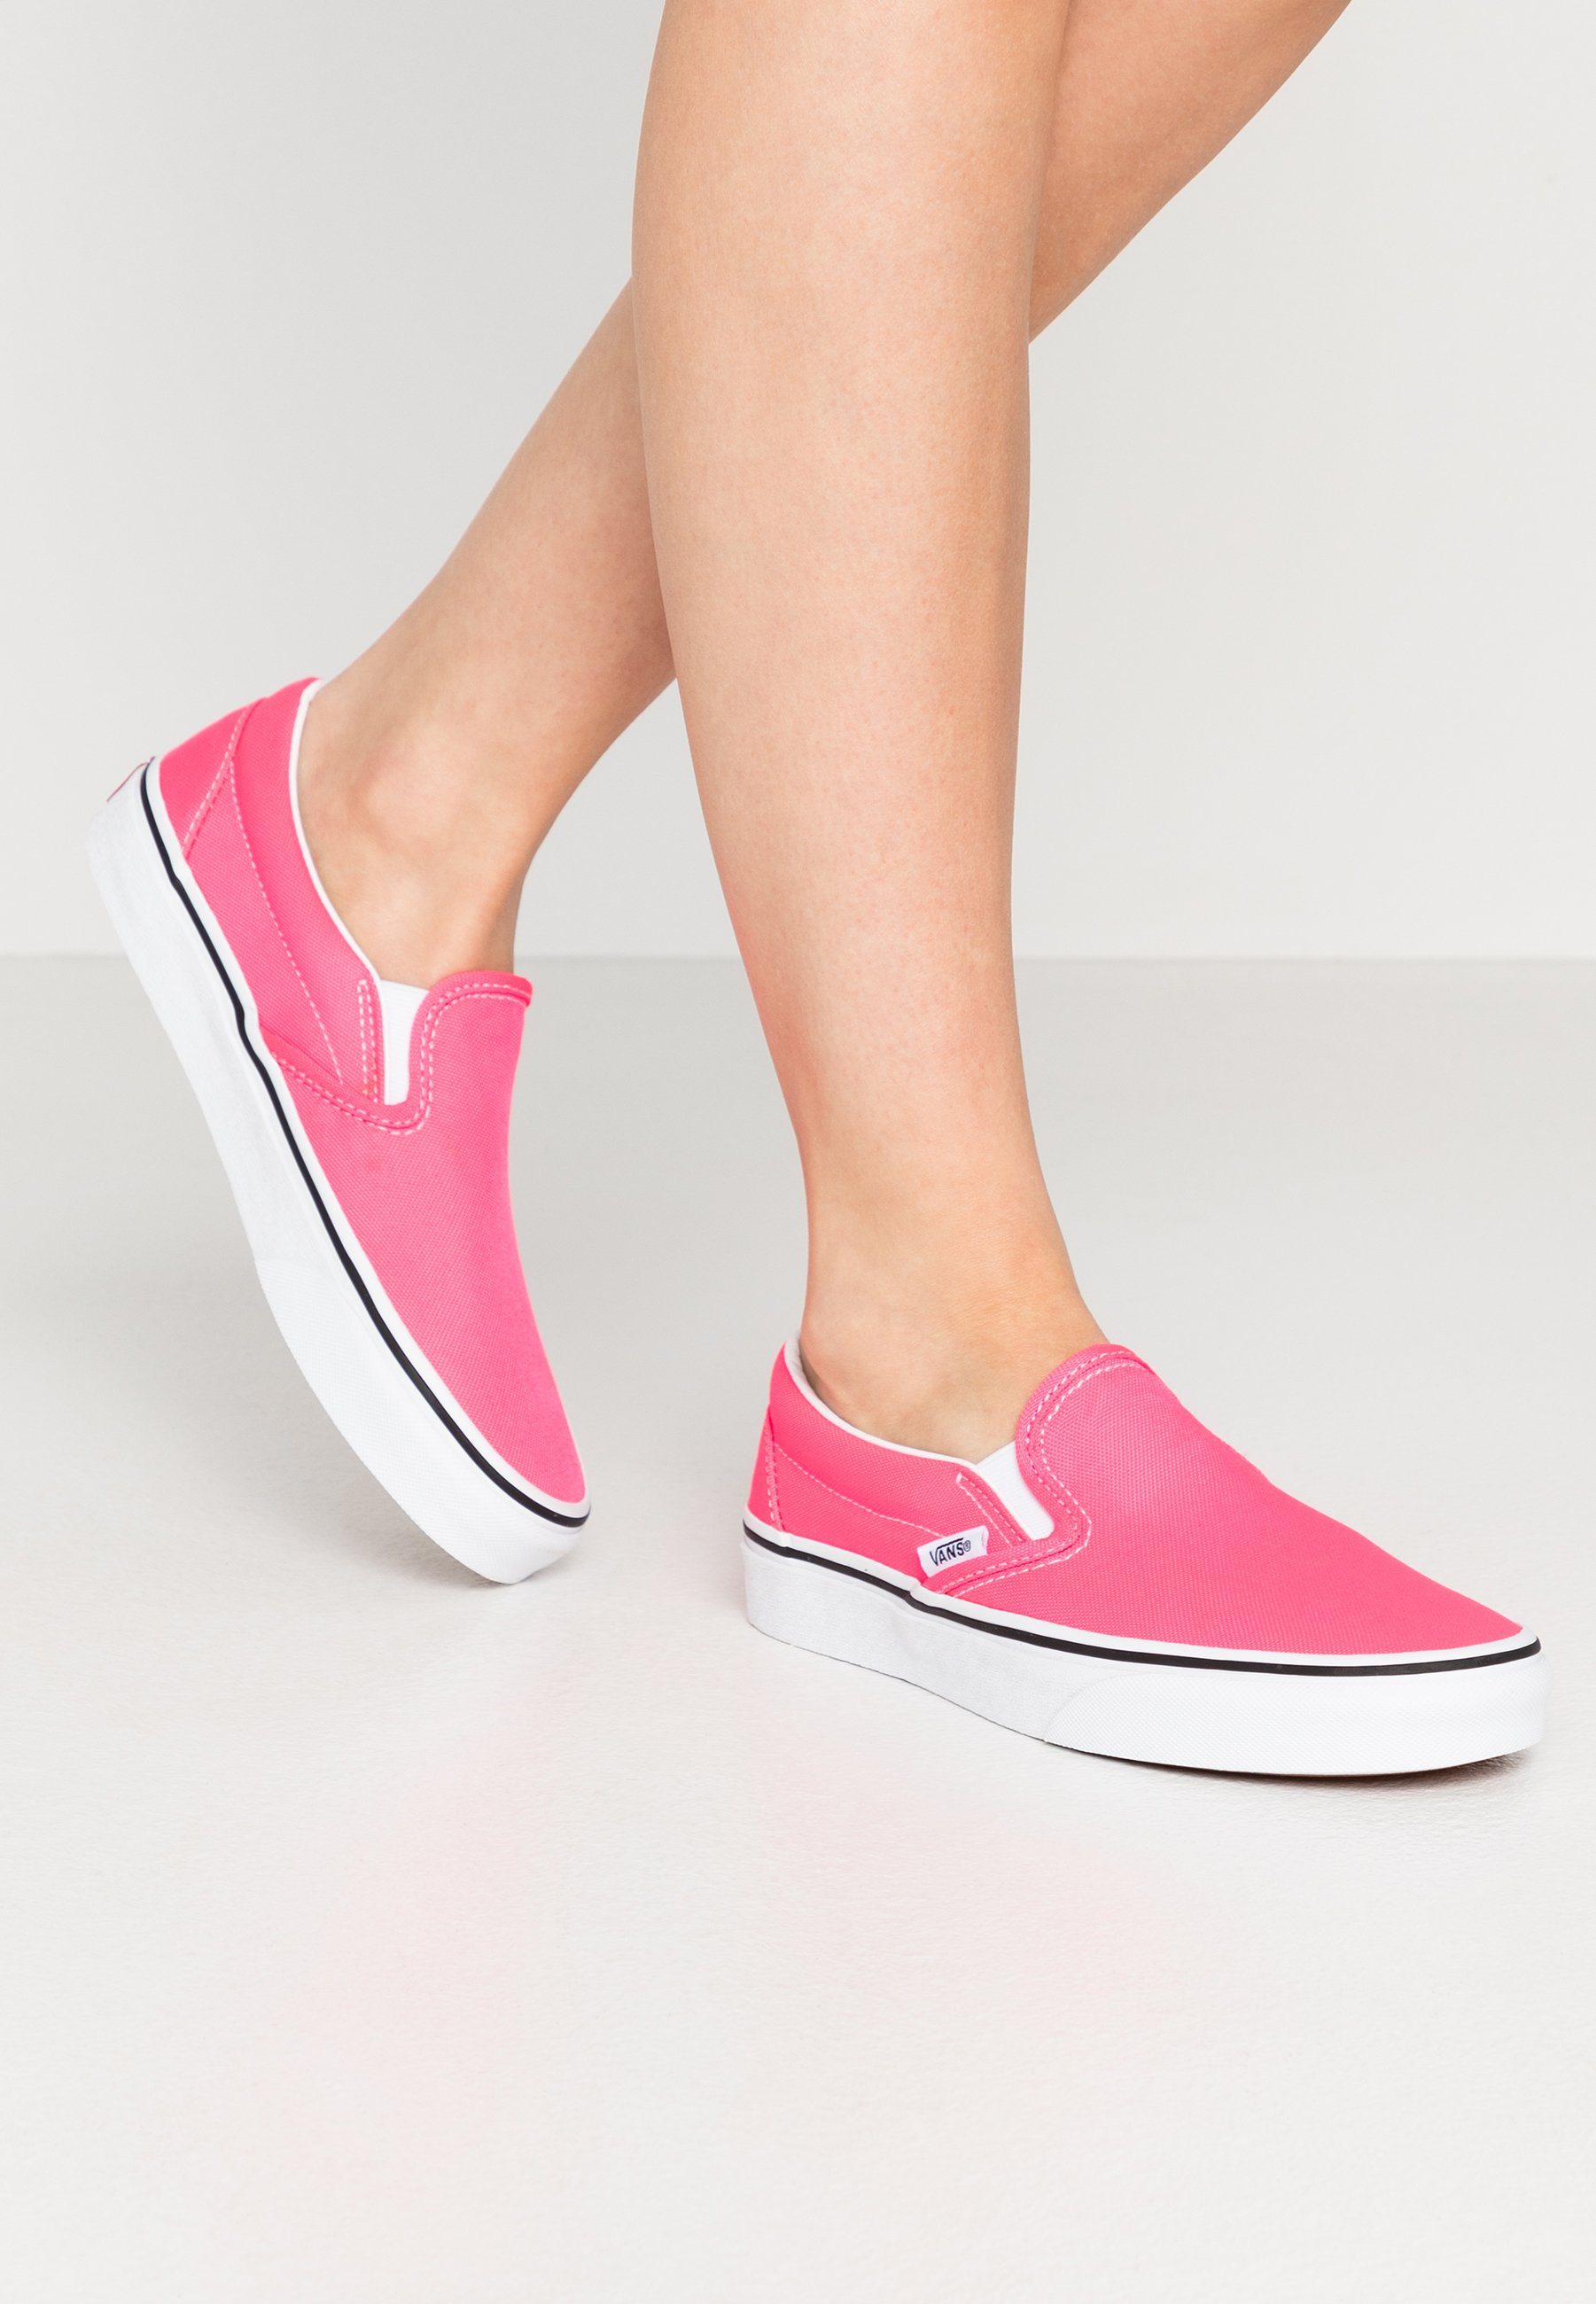 Vans Classic - Slippers Knockout Pink/true White